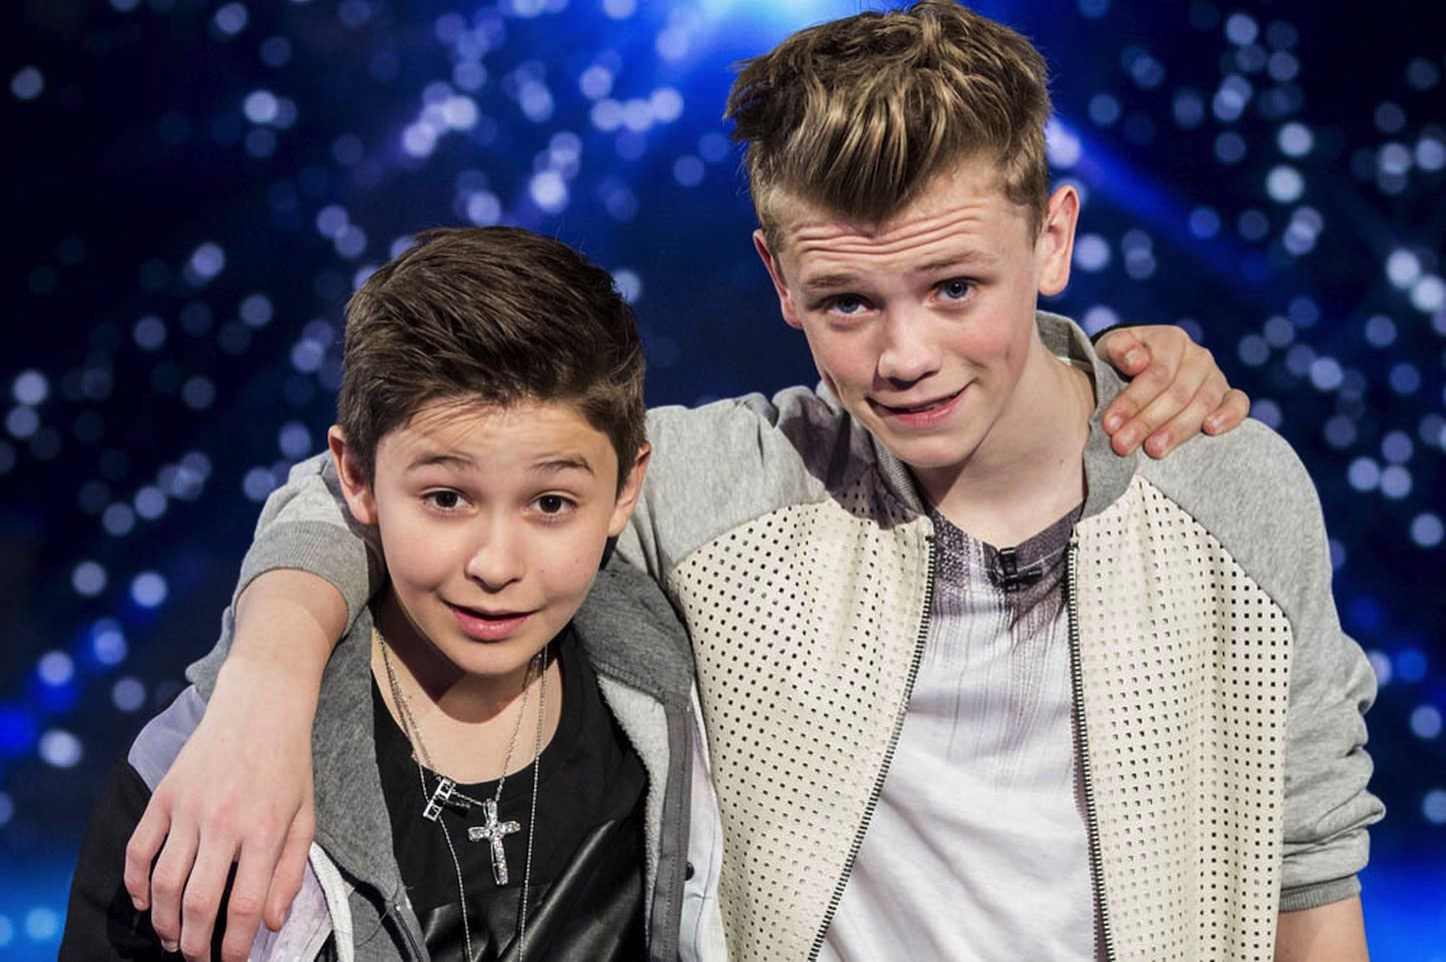 Bars and Melody Britains Got Talent